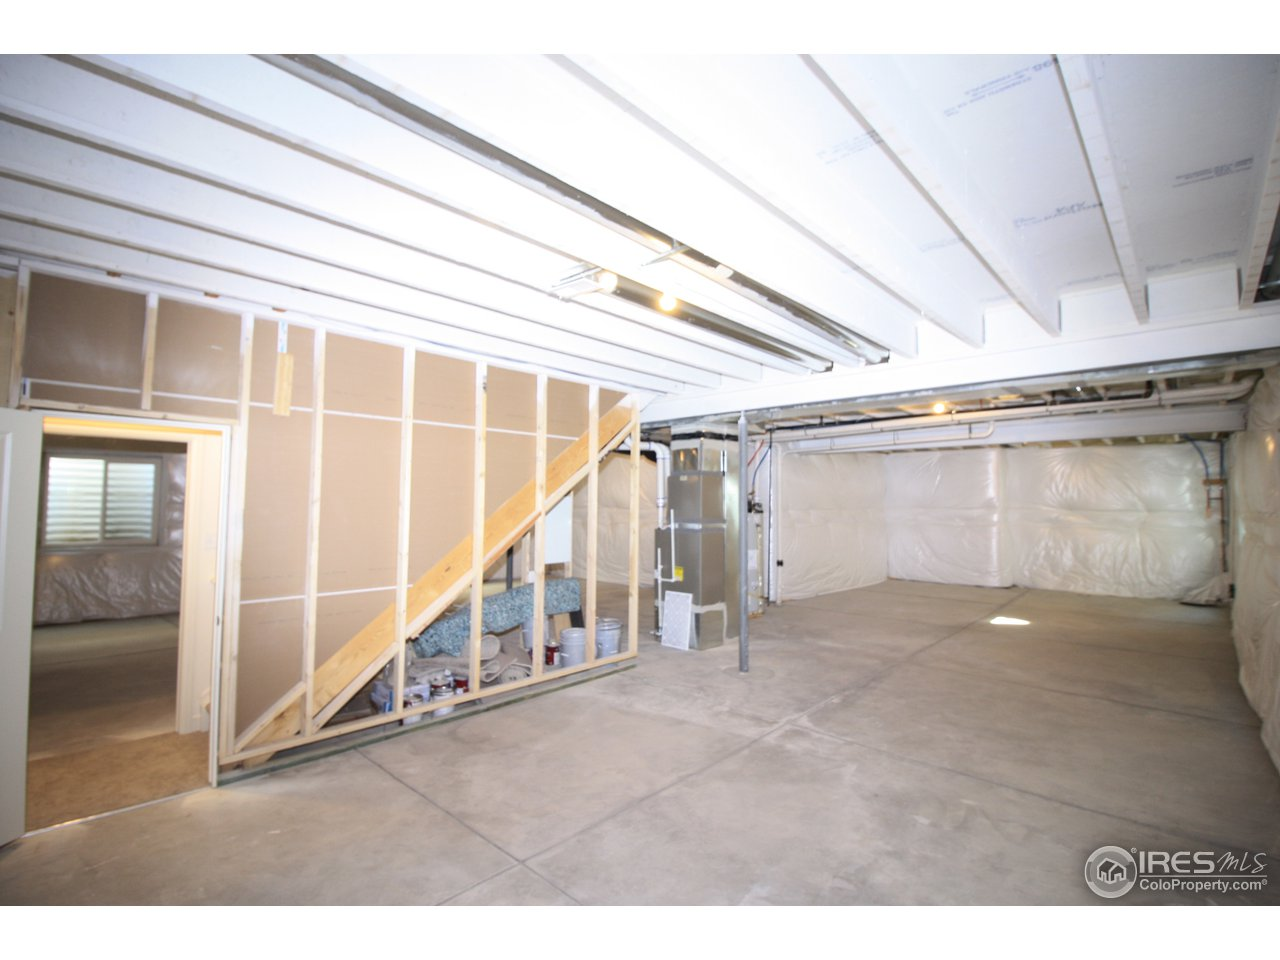 Ranch style space basement